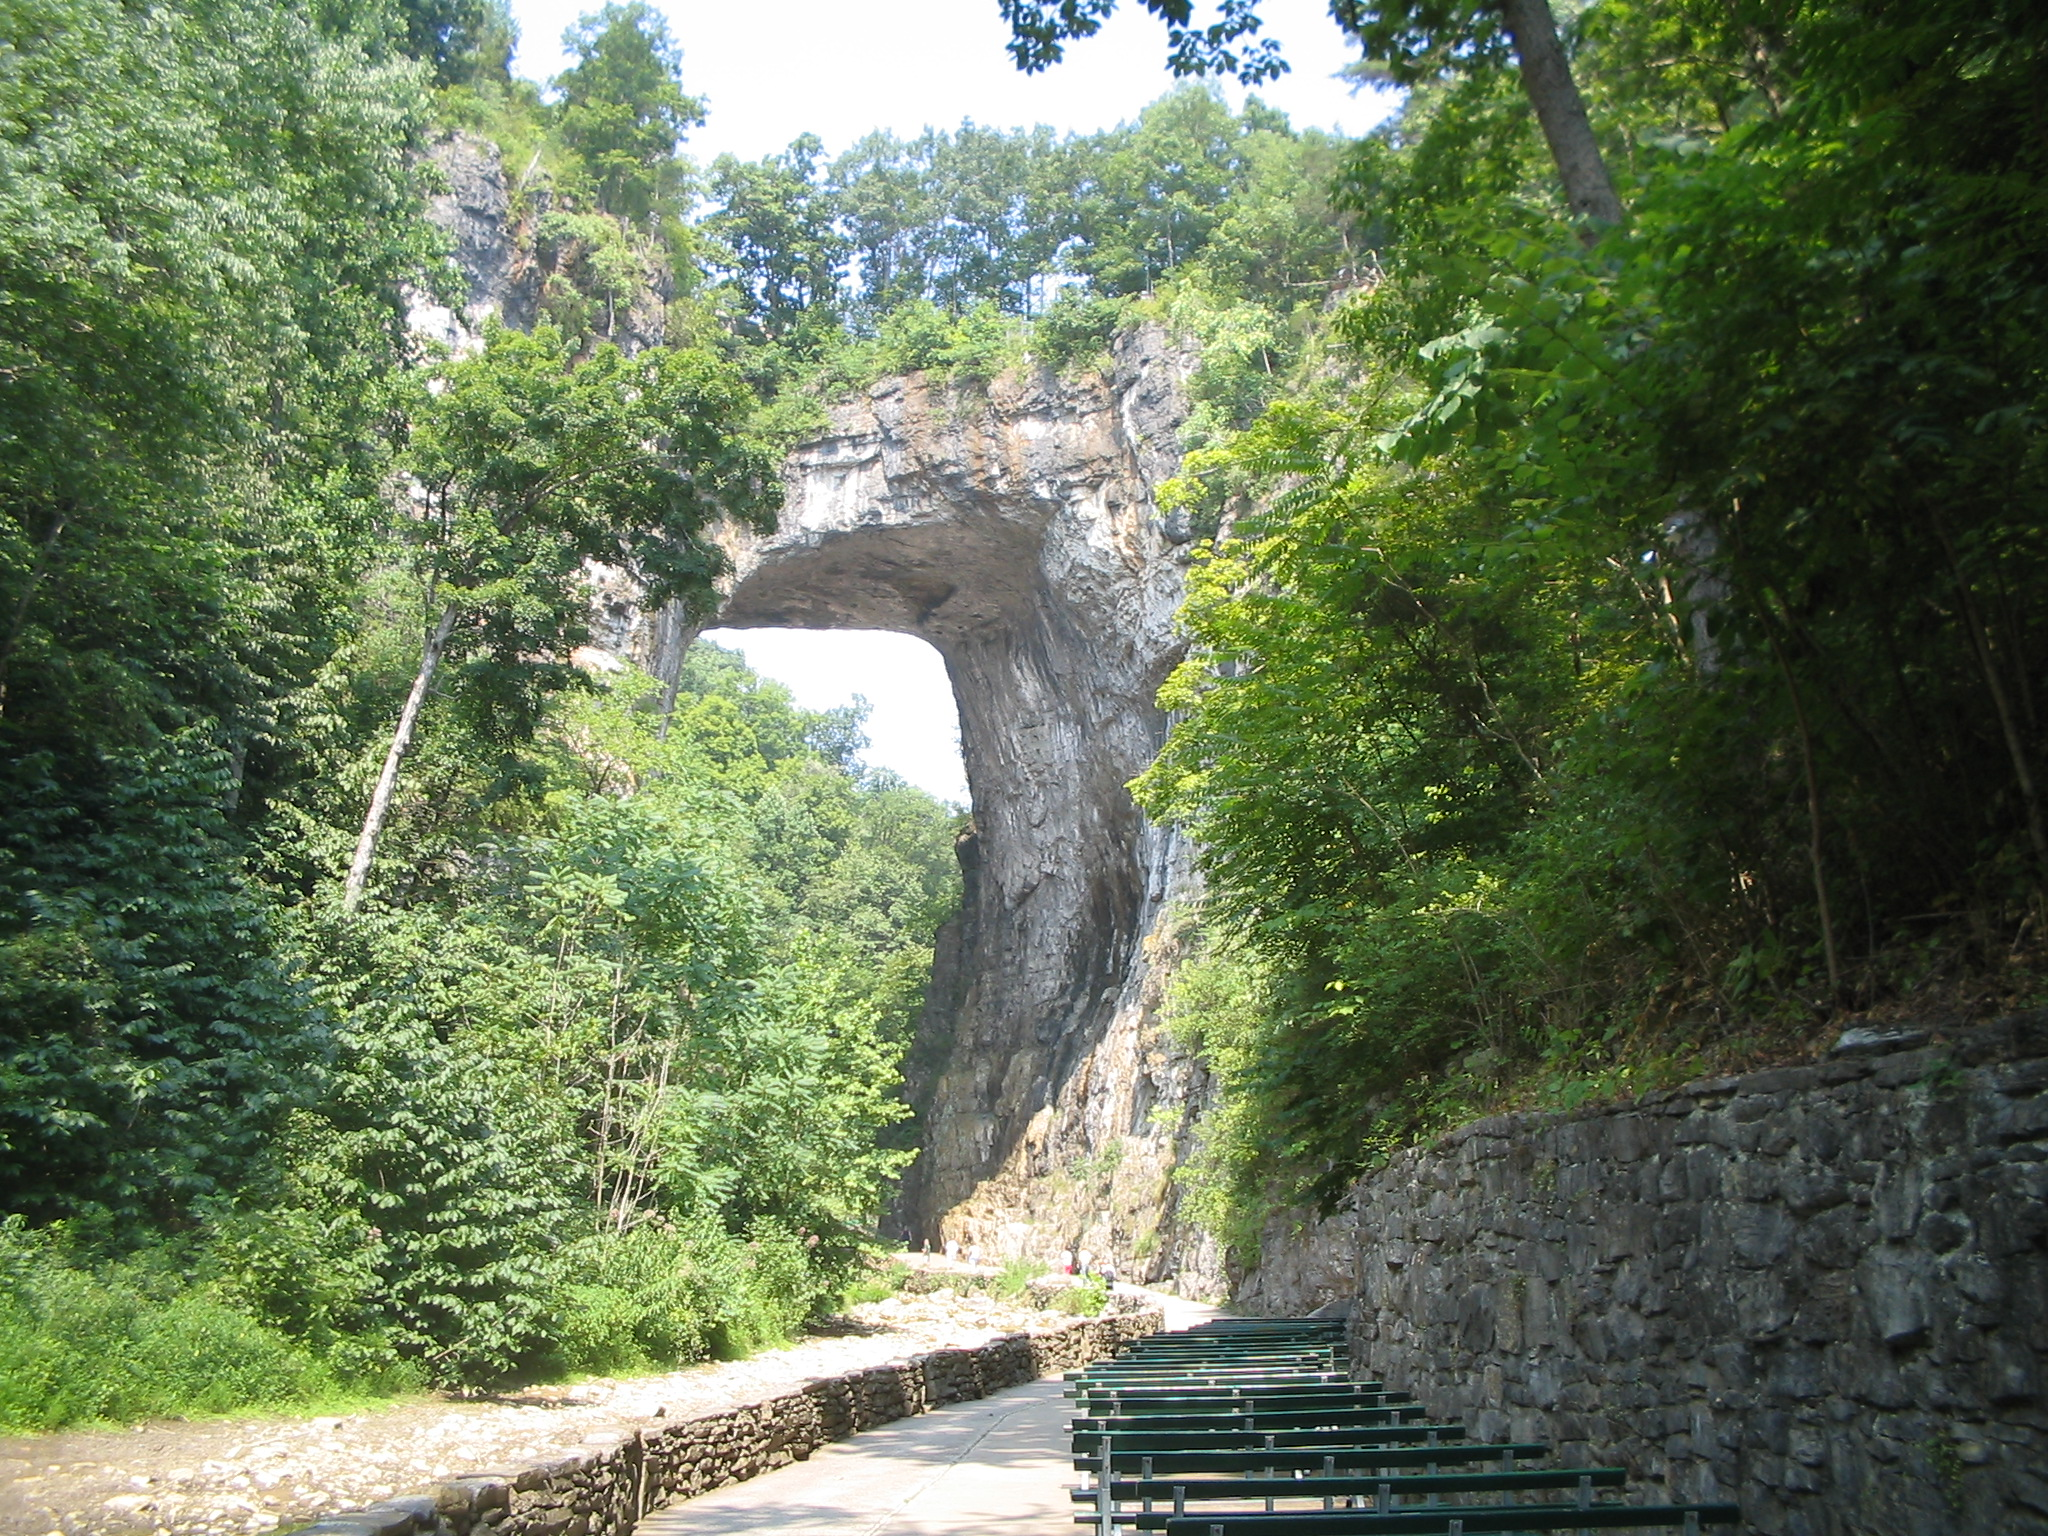 File:Natural Bridge.jpg  Wikipedia, the free encyclopedia